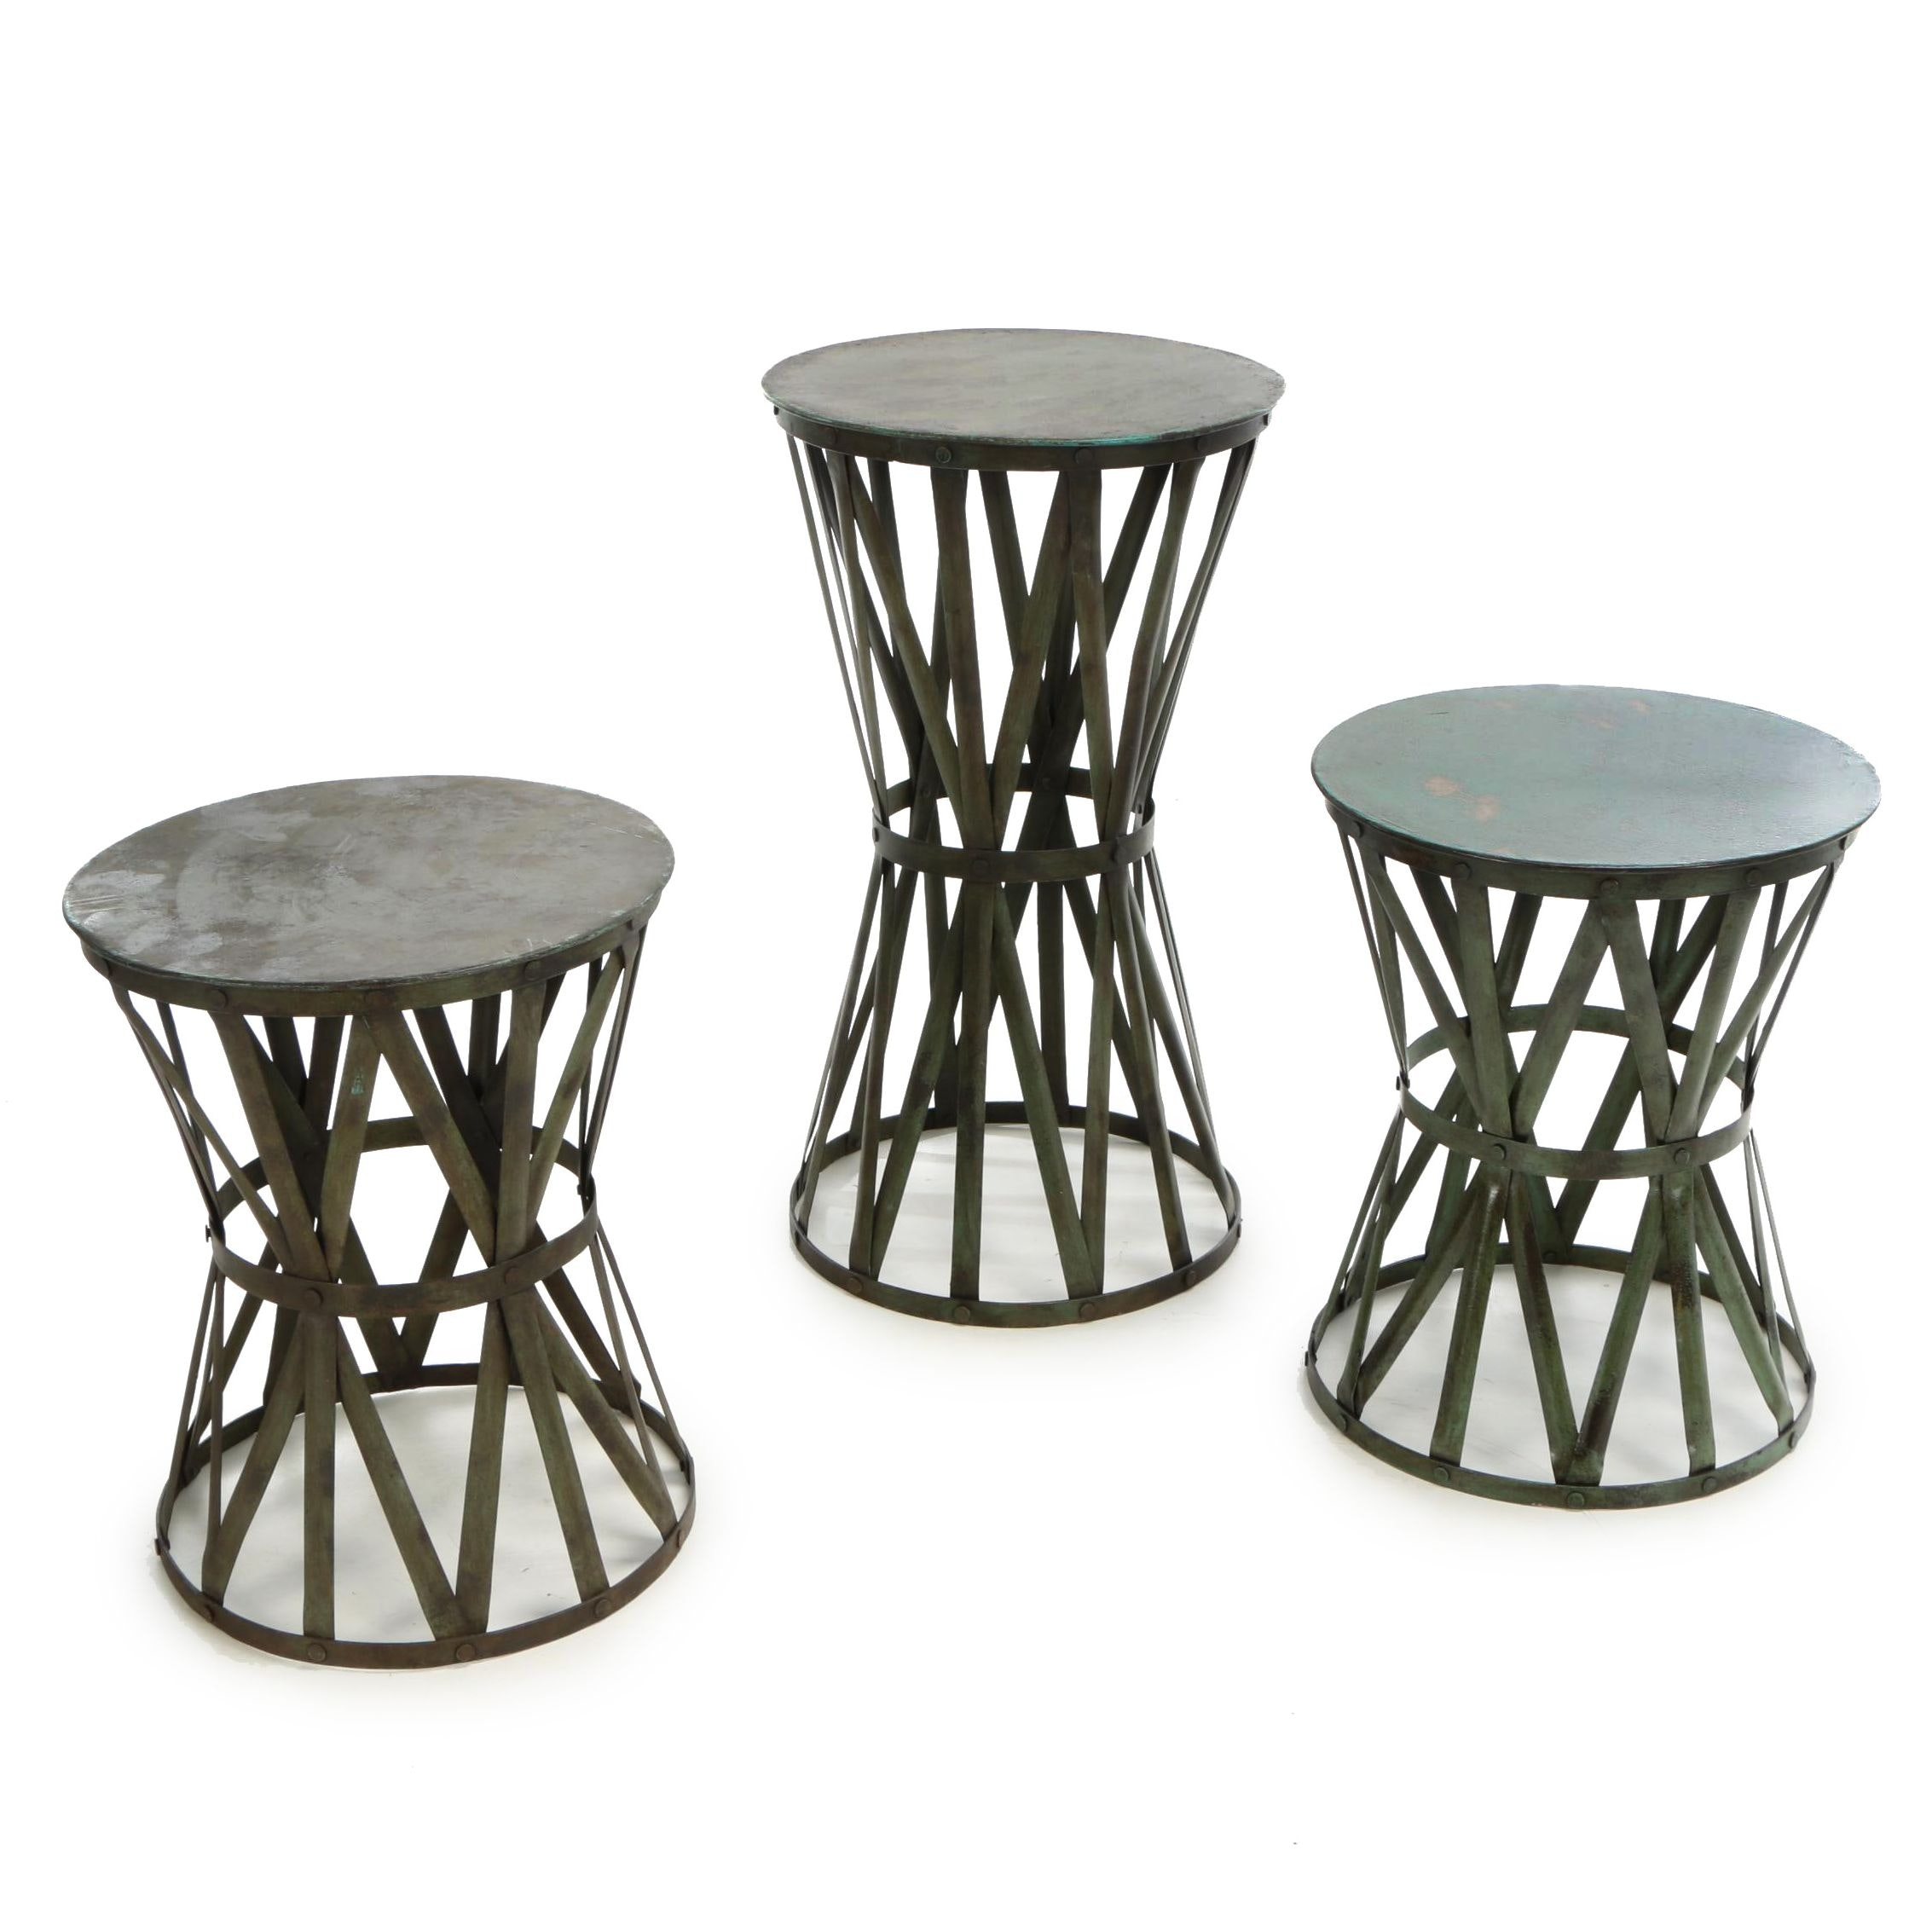 "Industrial Style ""Drum"" Painted Metal Stools and Side Table, 21st Century"